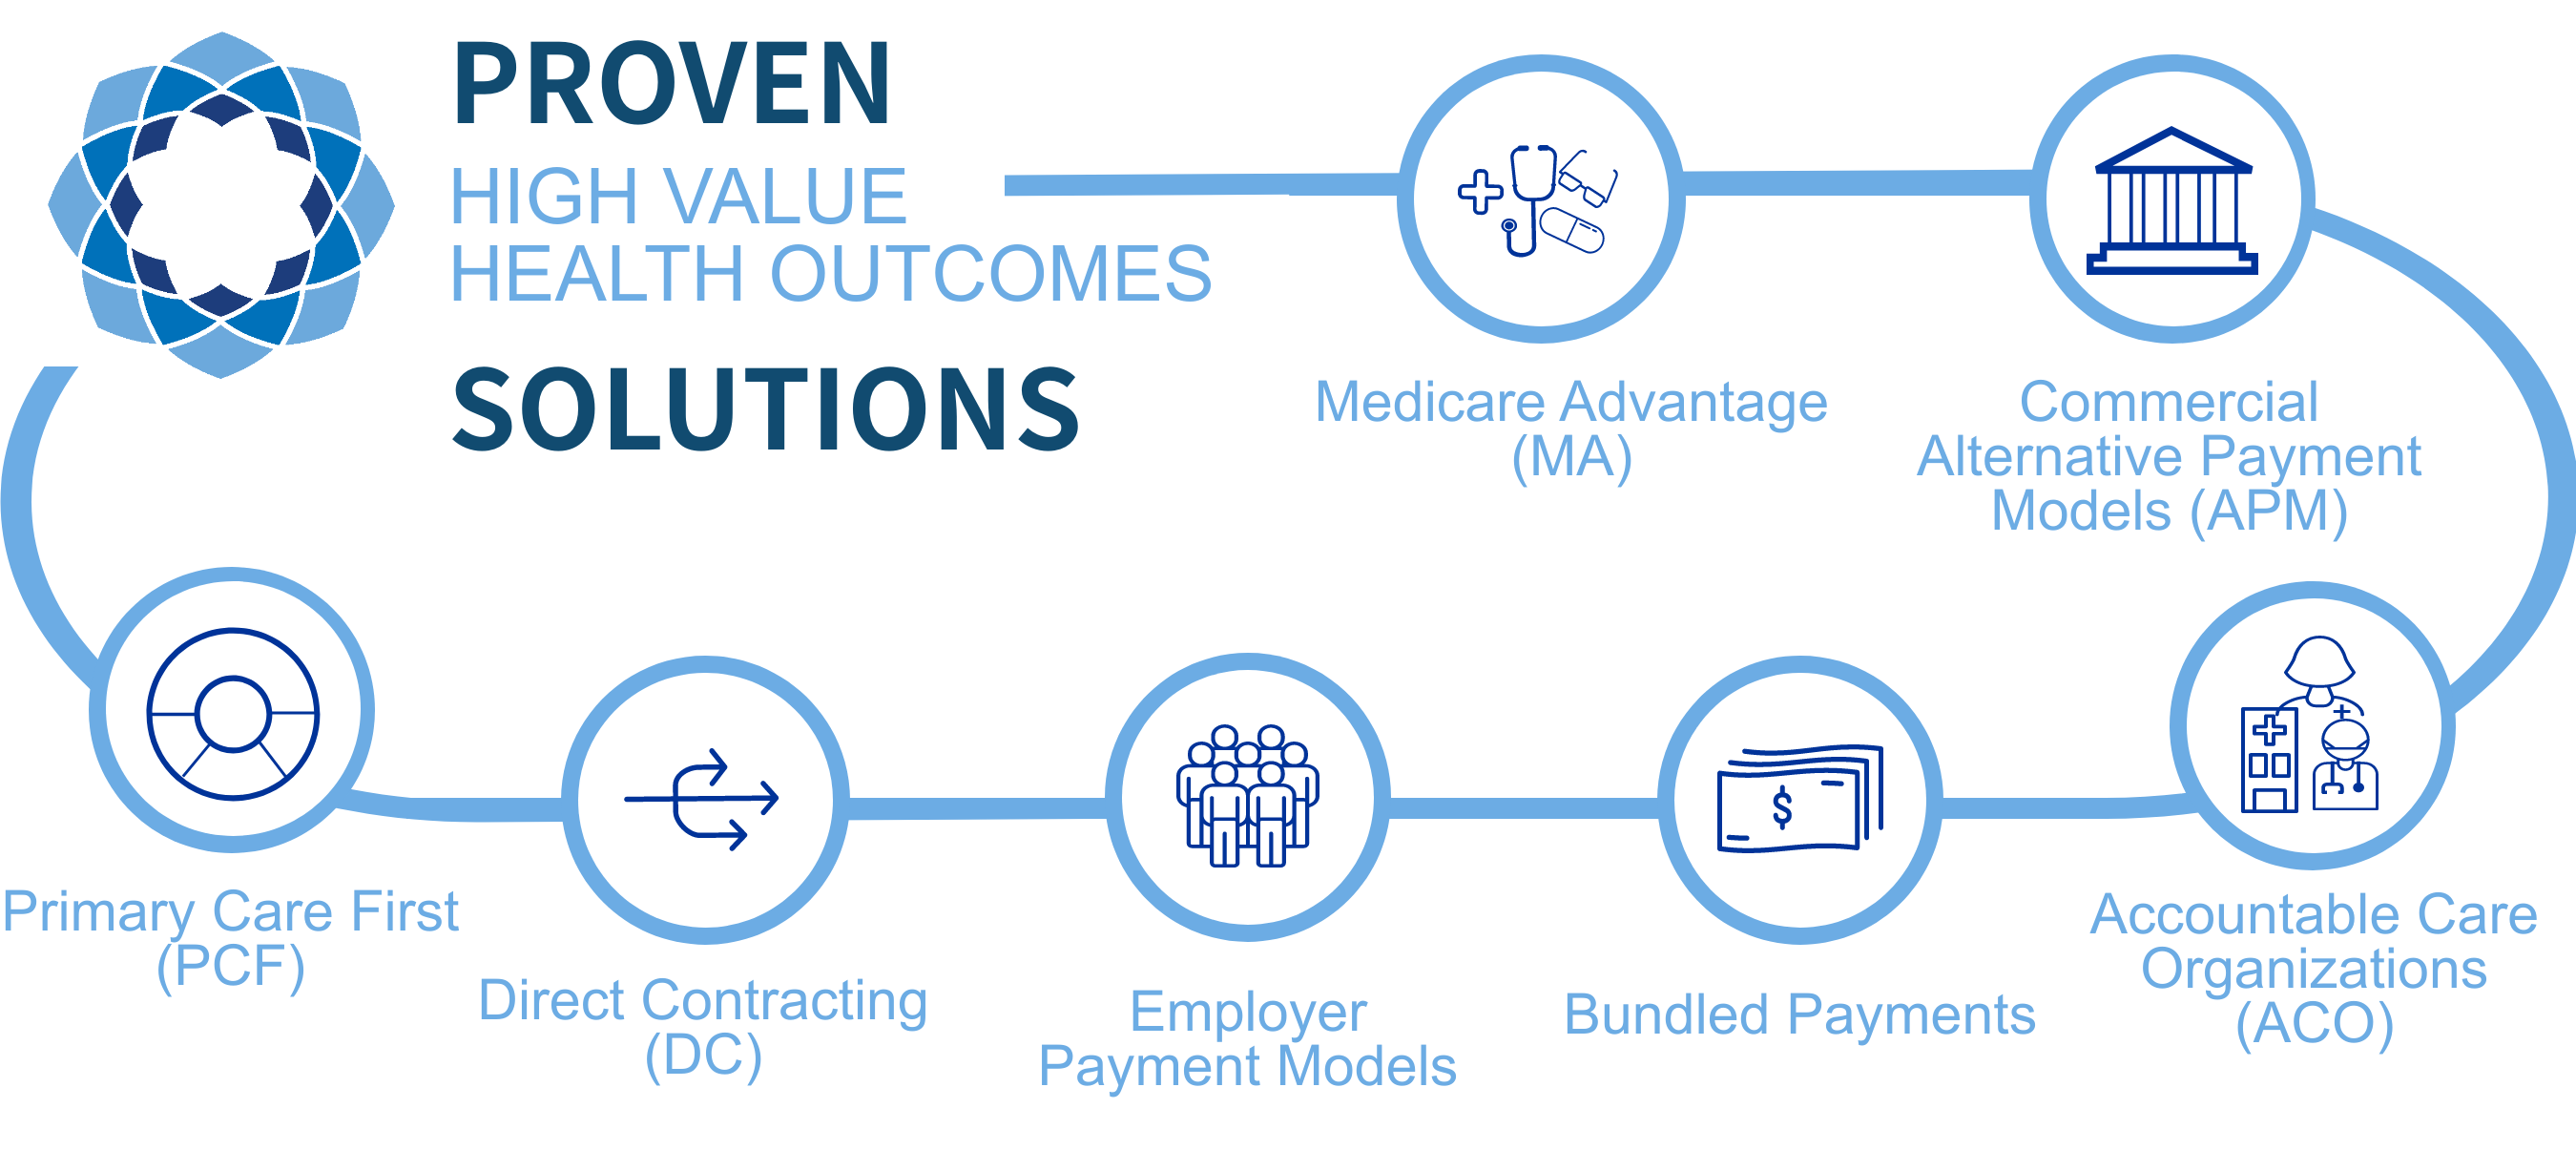 Proven Solutions High Value Health Outcomes Medicare Advantage, Commercial Alternative Payment Models (APM), Accountable Care Organizations (ACO), Bundled Payments, Employer Payment Models, Direct Contracting (DC), Primary Care First (PCF)